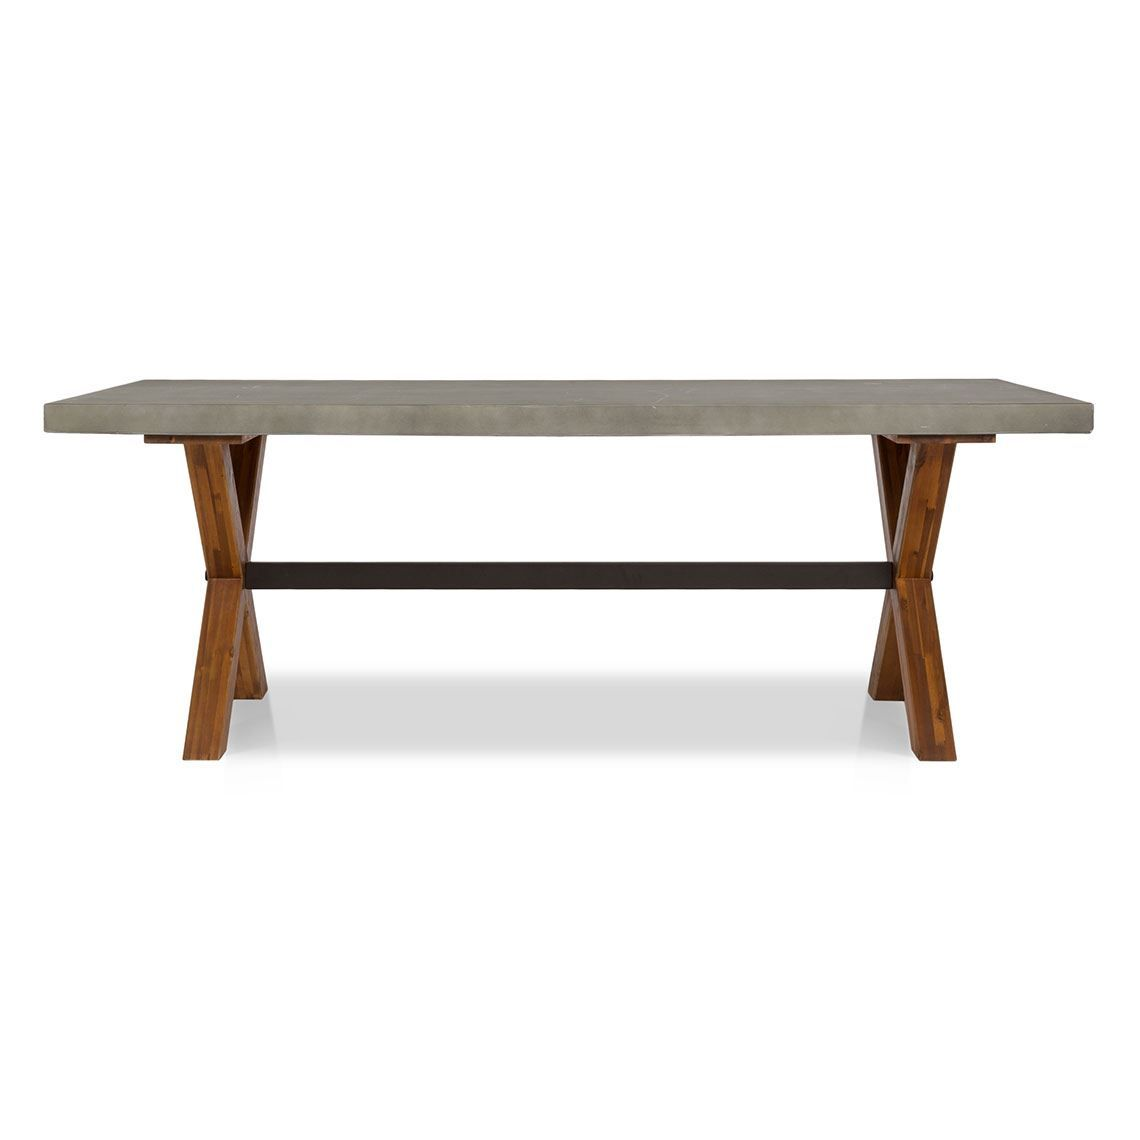 Havelock Outdoor Dining Table Cement Acacia Concrete Dining Table Outdoor Dining Chairs Dining Table